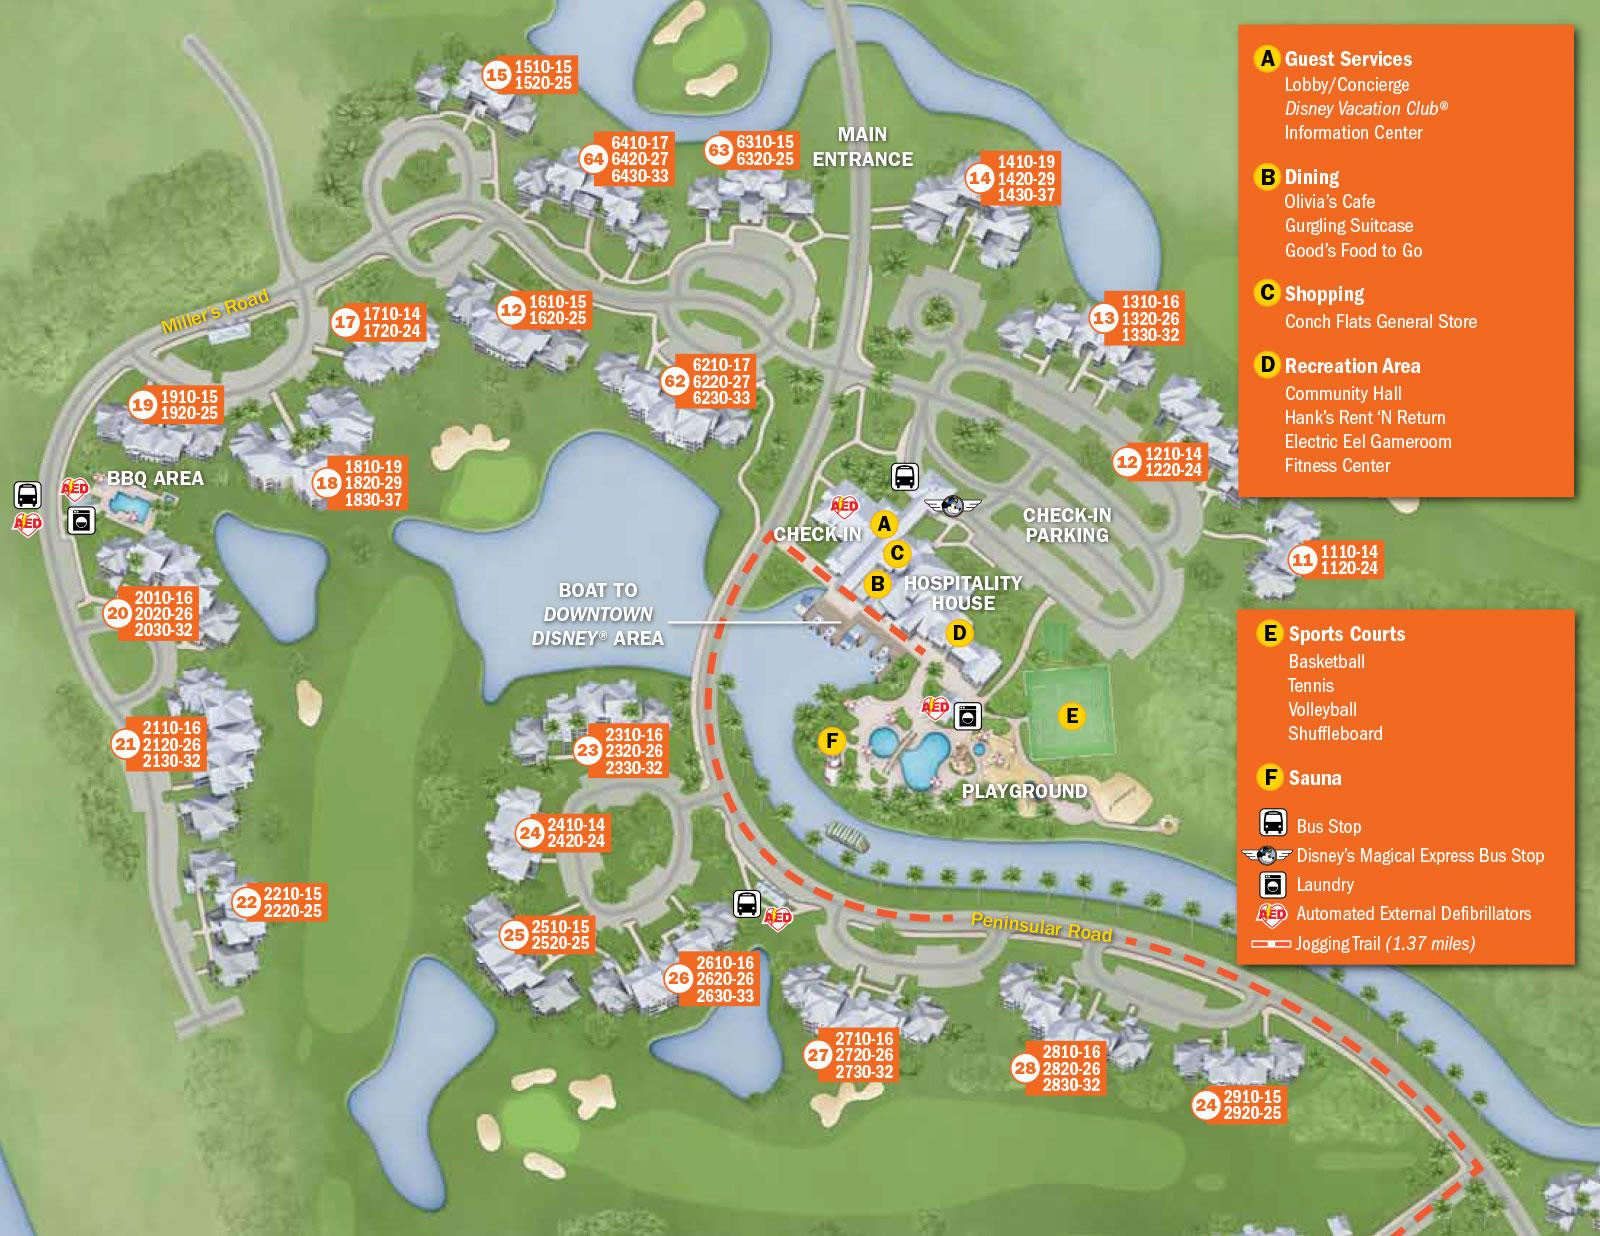 old key west resort map 2